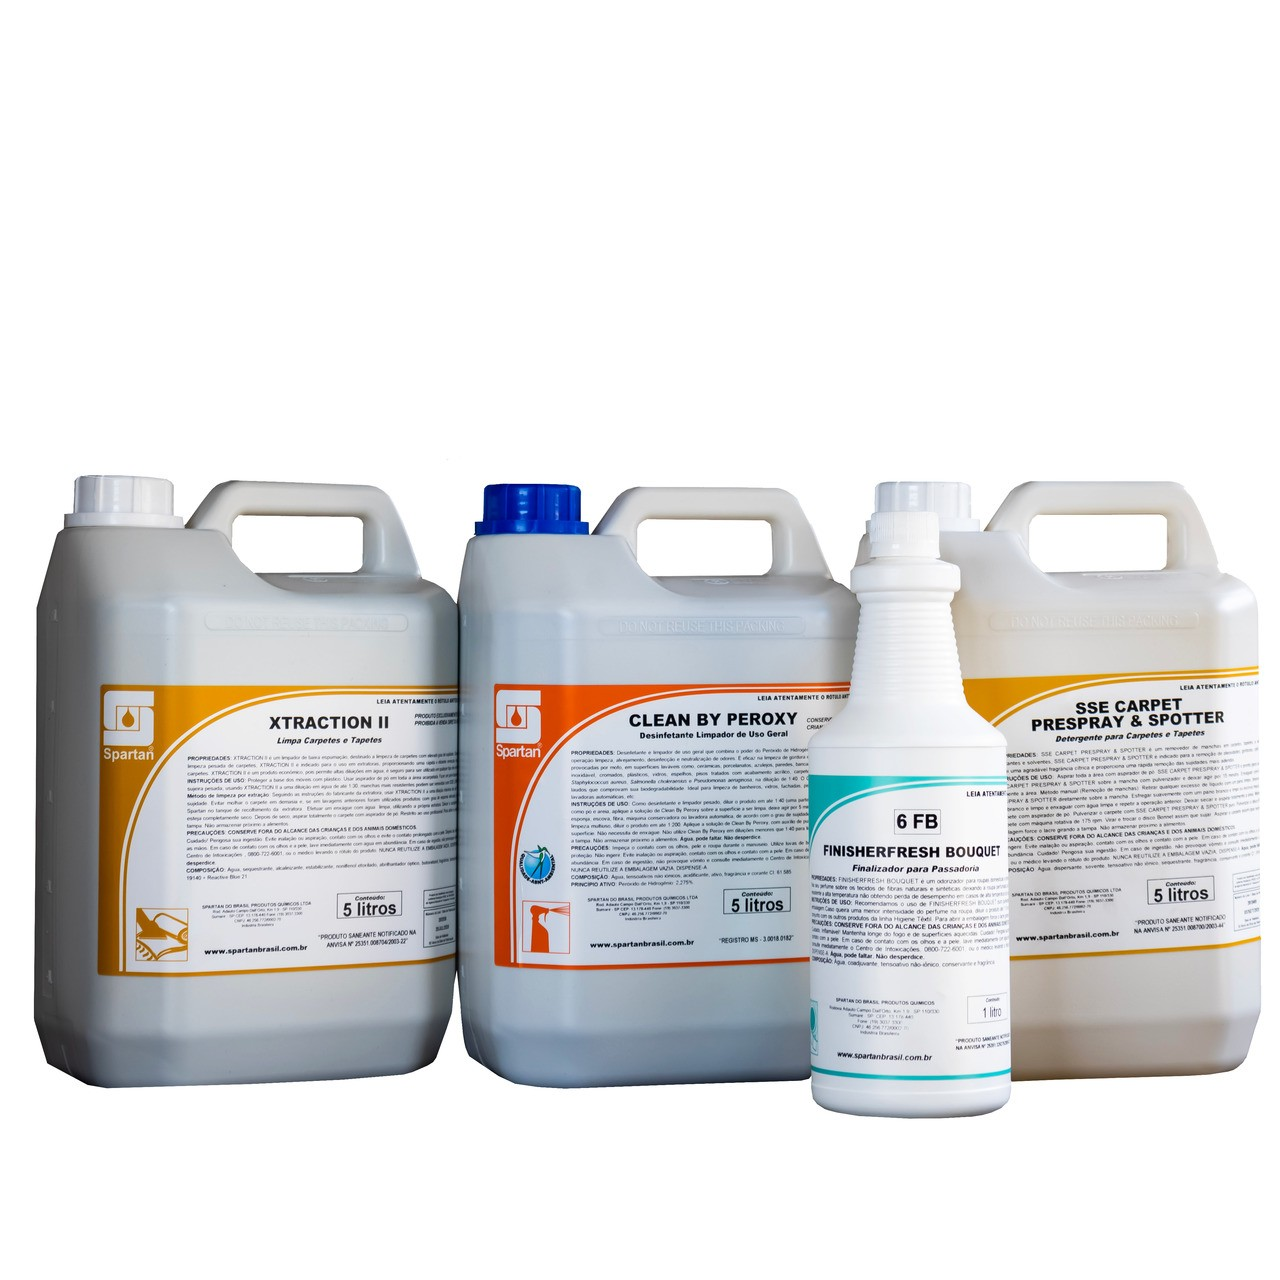 Kit Xtraction Il / Clean By Peroxy / Sse Carpet / Odorizador